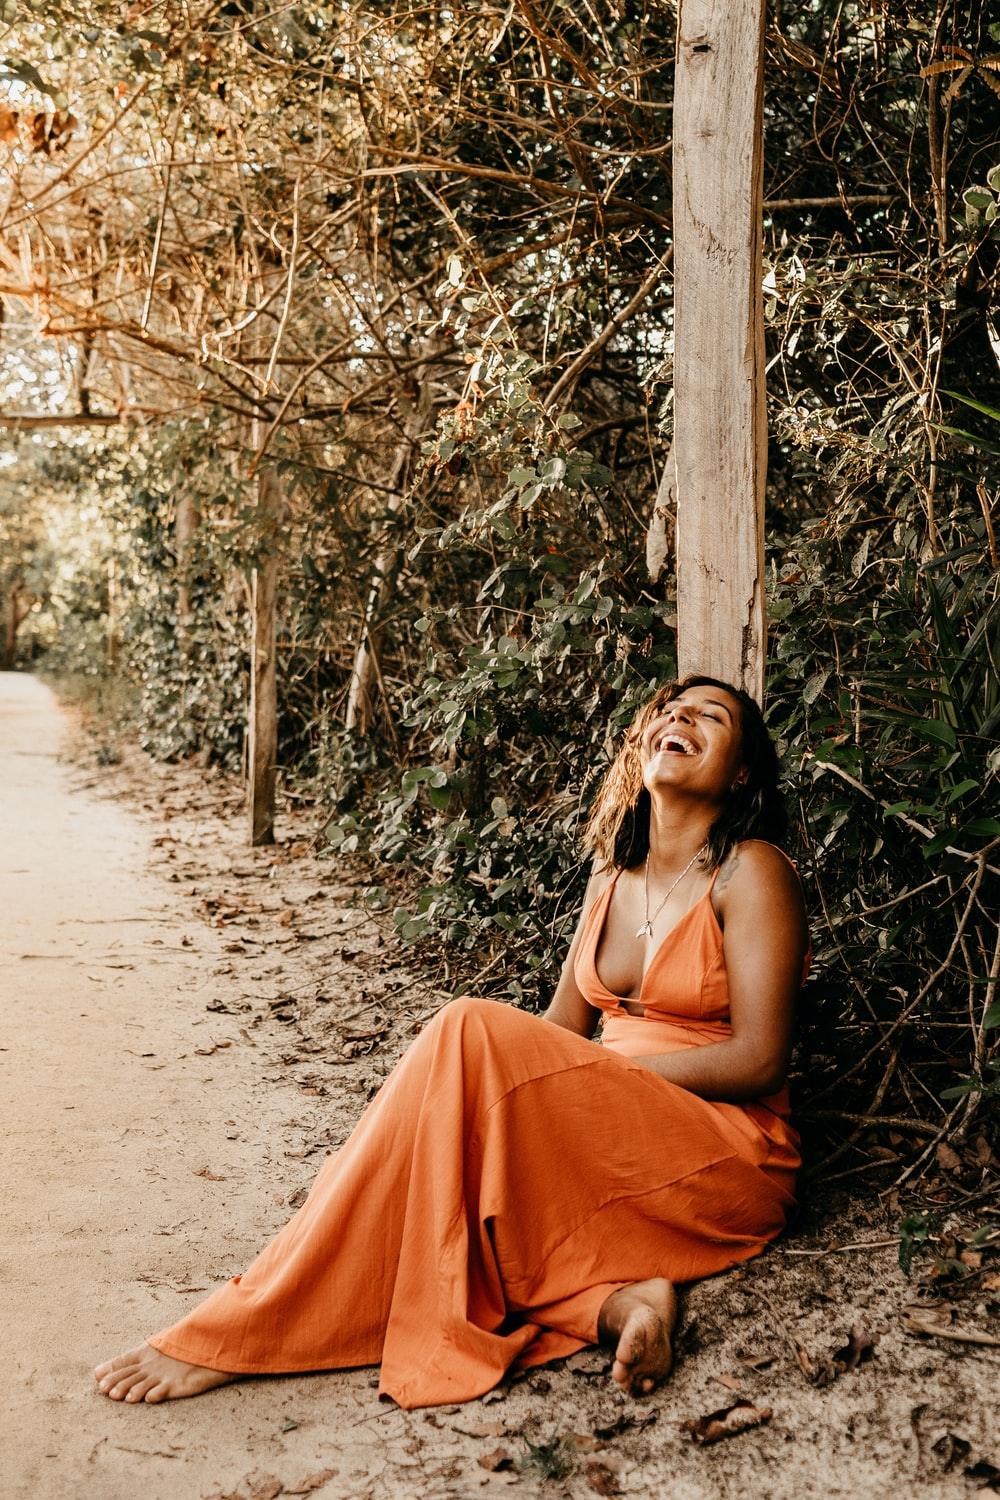 barefooted woman wearing orange spaghetti strap dress laughing while sitting on pathway surrounded with green trees